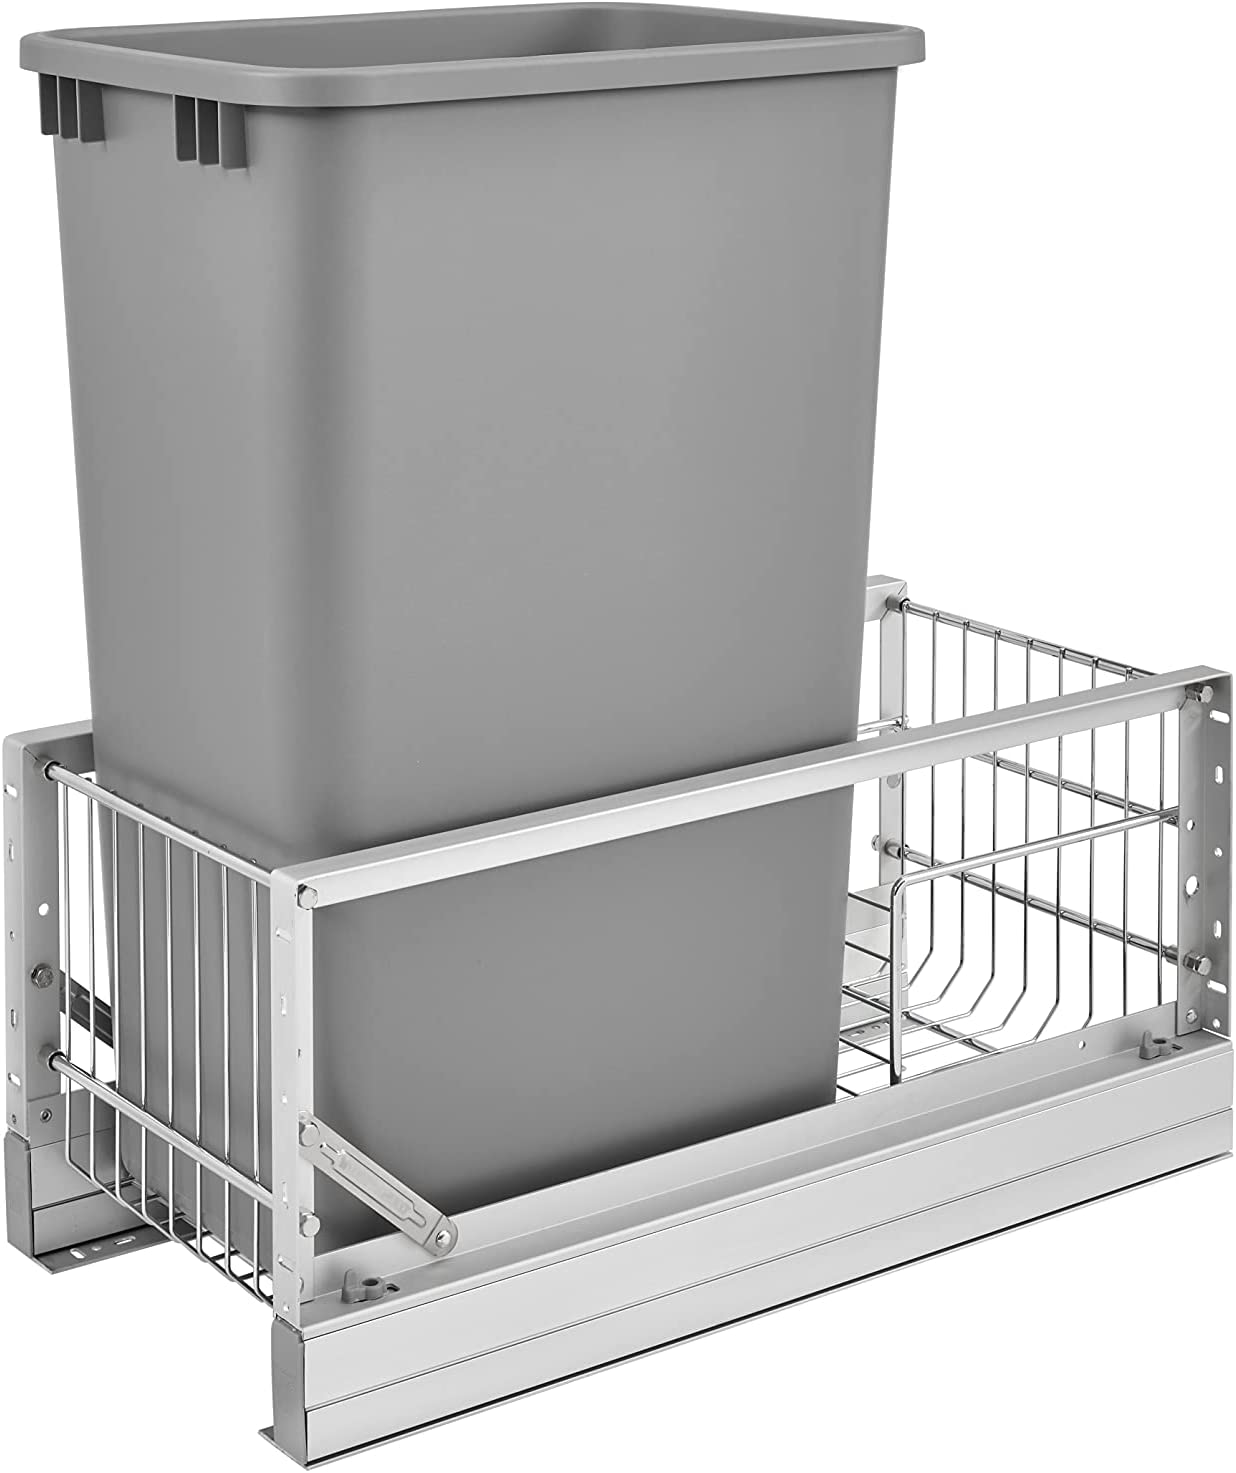 Lowest price challenge Rev-A-Shelf - outlet 5349-1550DM-117 Single 50 A Brushed Pull-Out Qt.